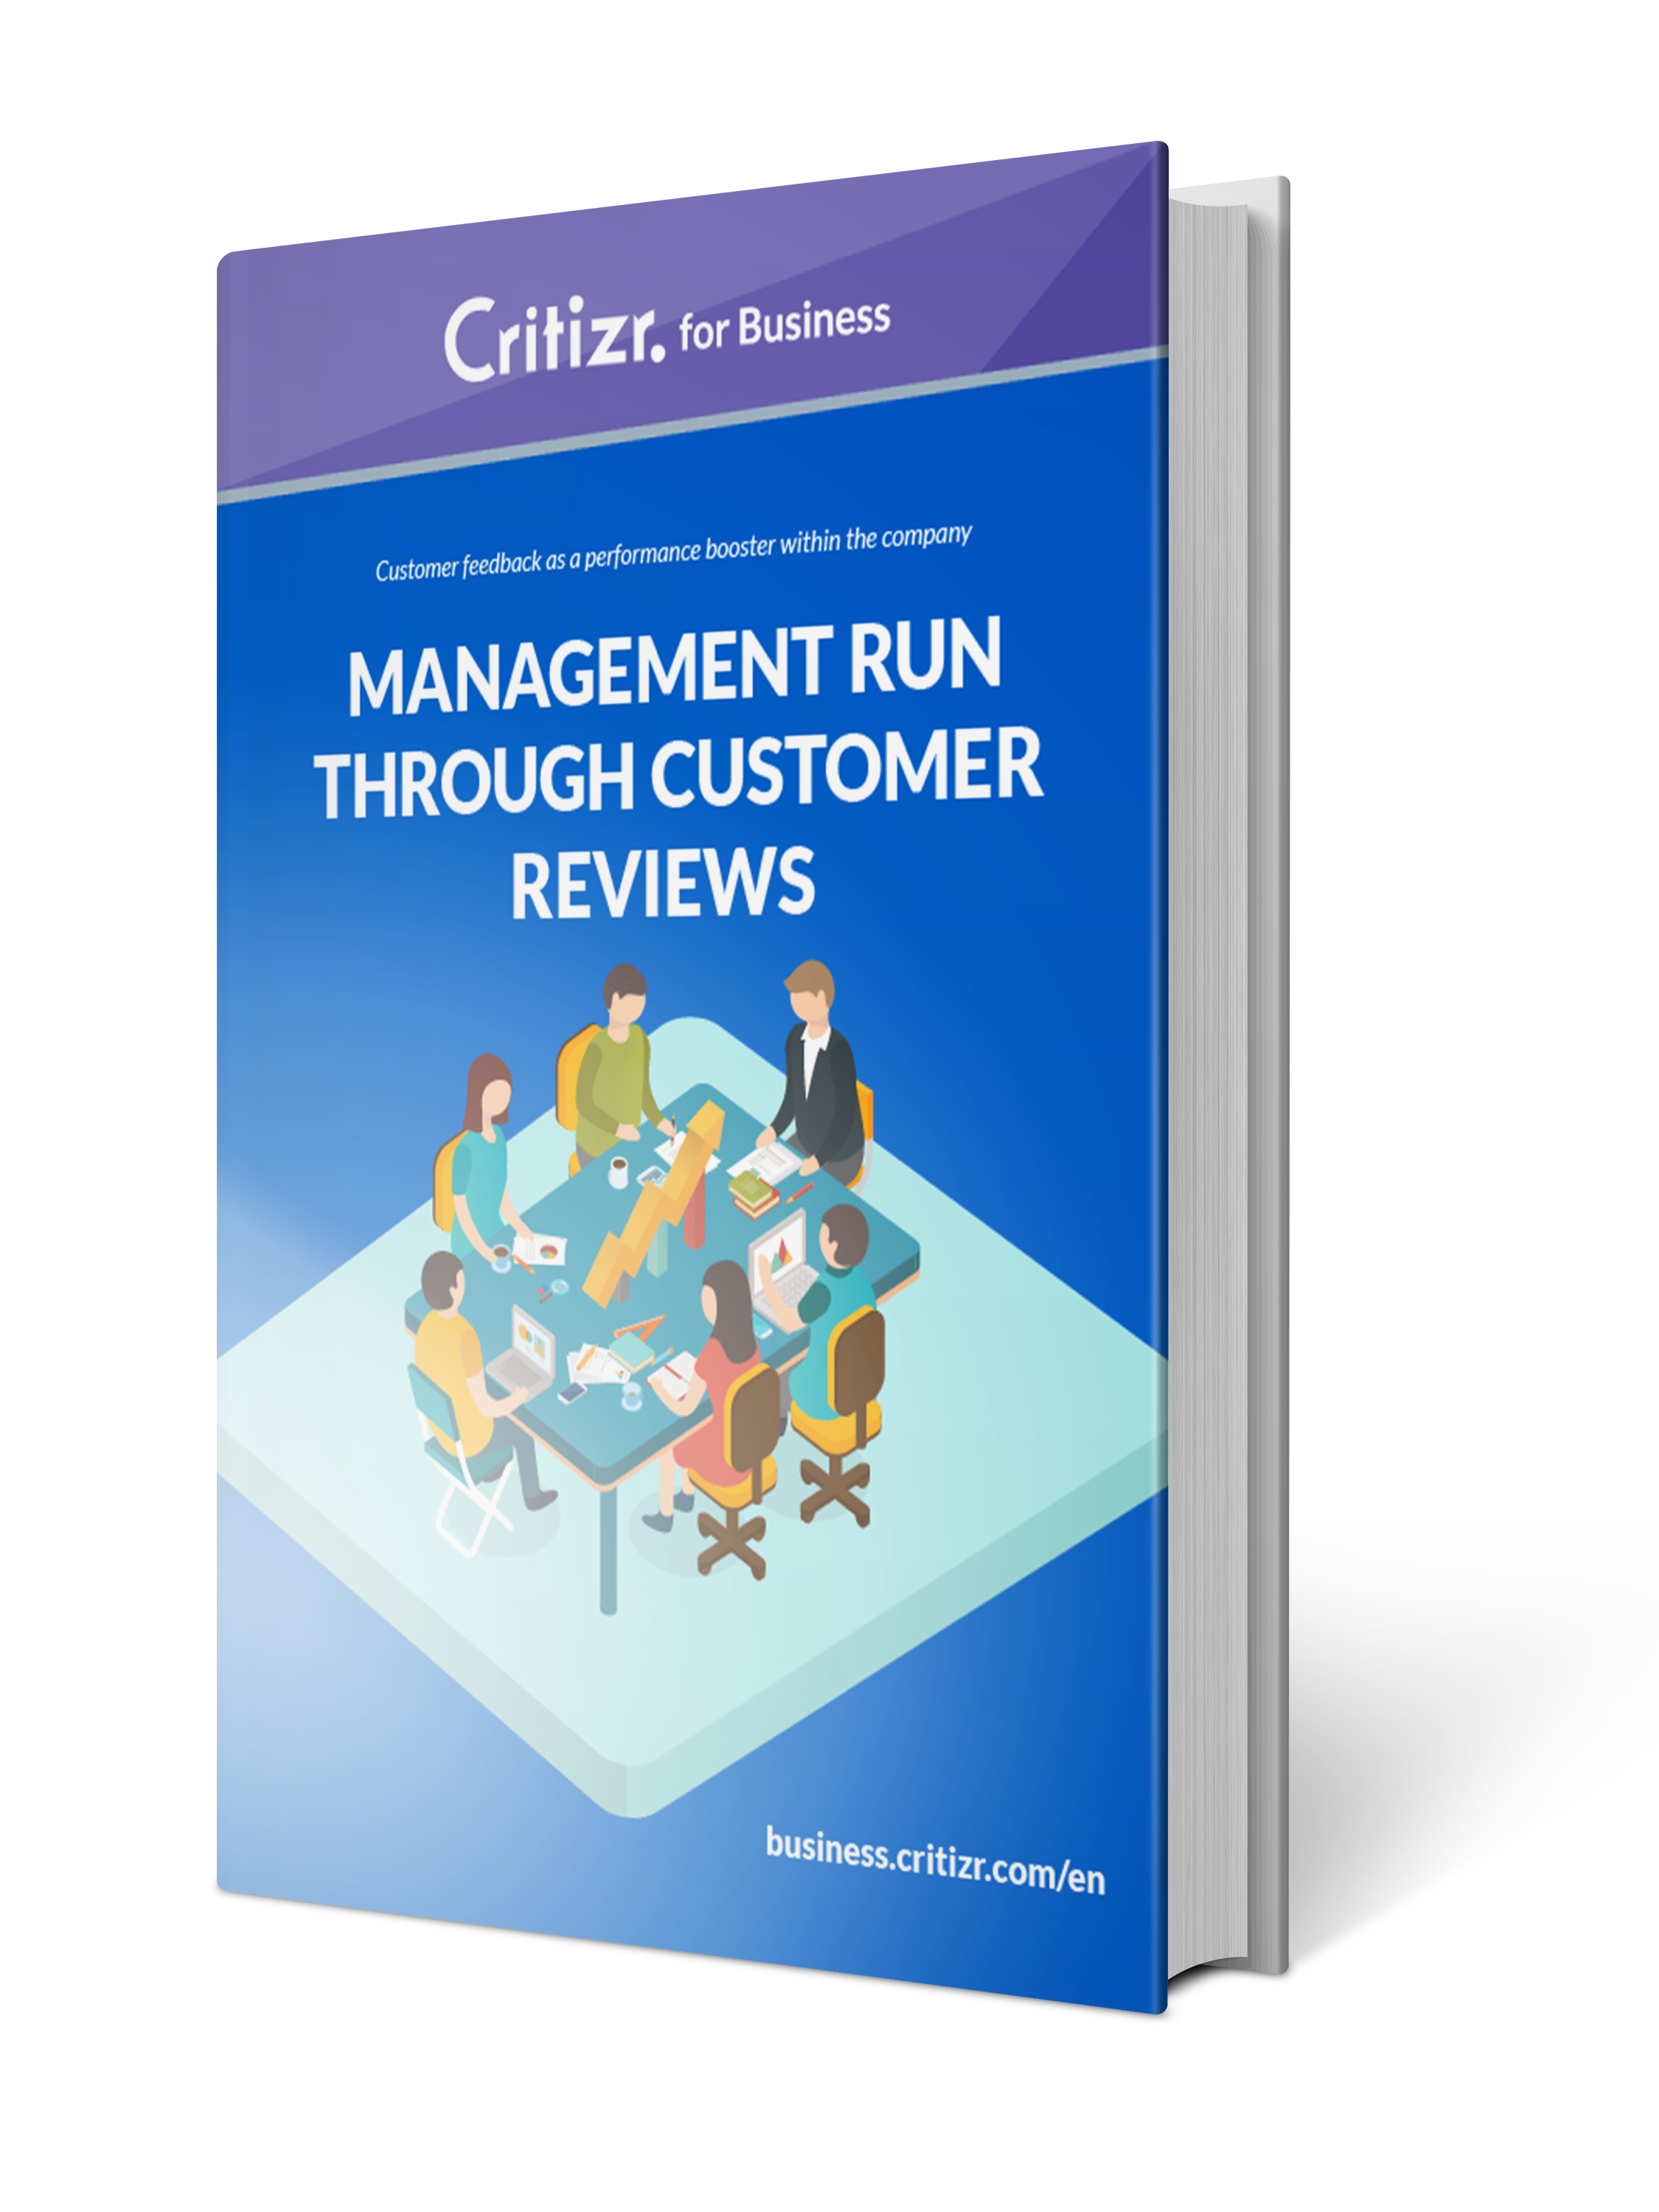 Ebook management with customer feedbacks